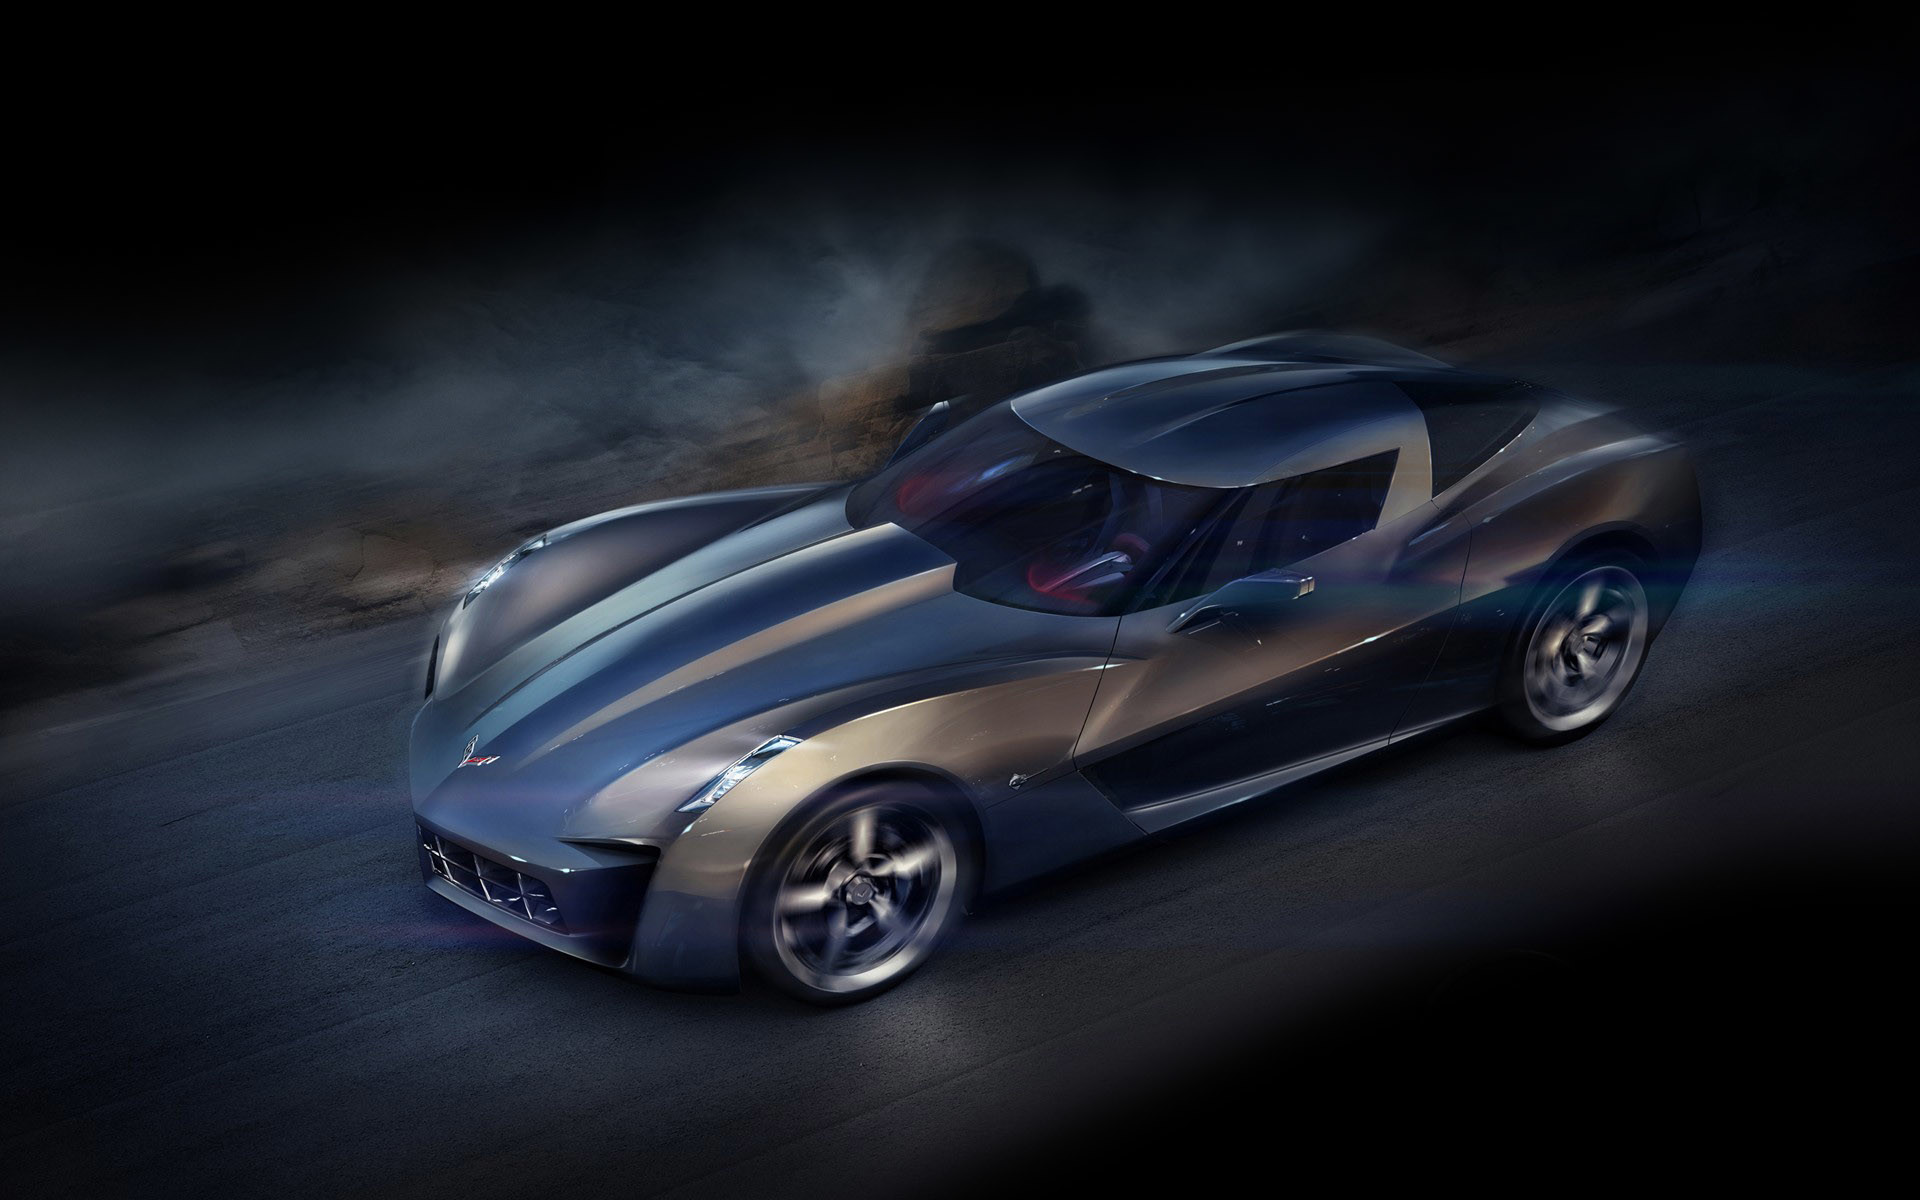 Fast Car Wallpaper Hd: Super Fast Cars Wallpapers (64+ Images